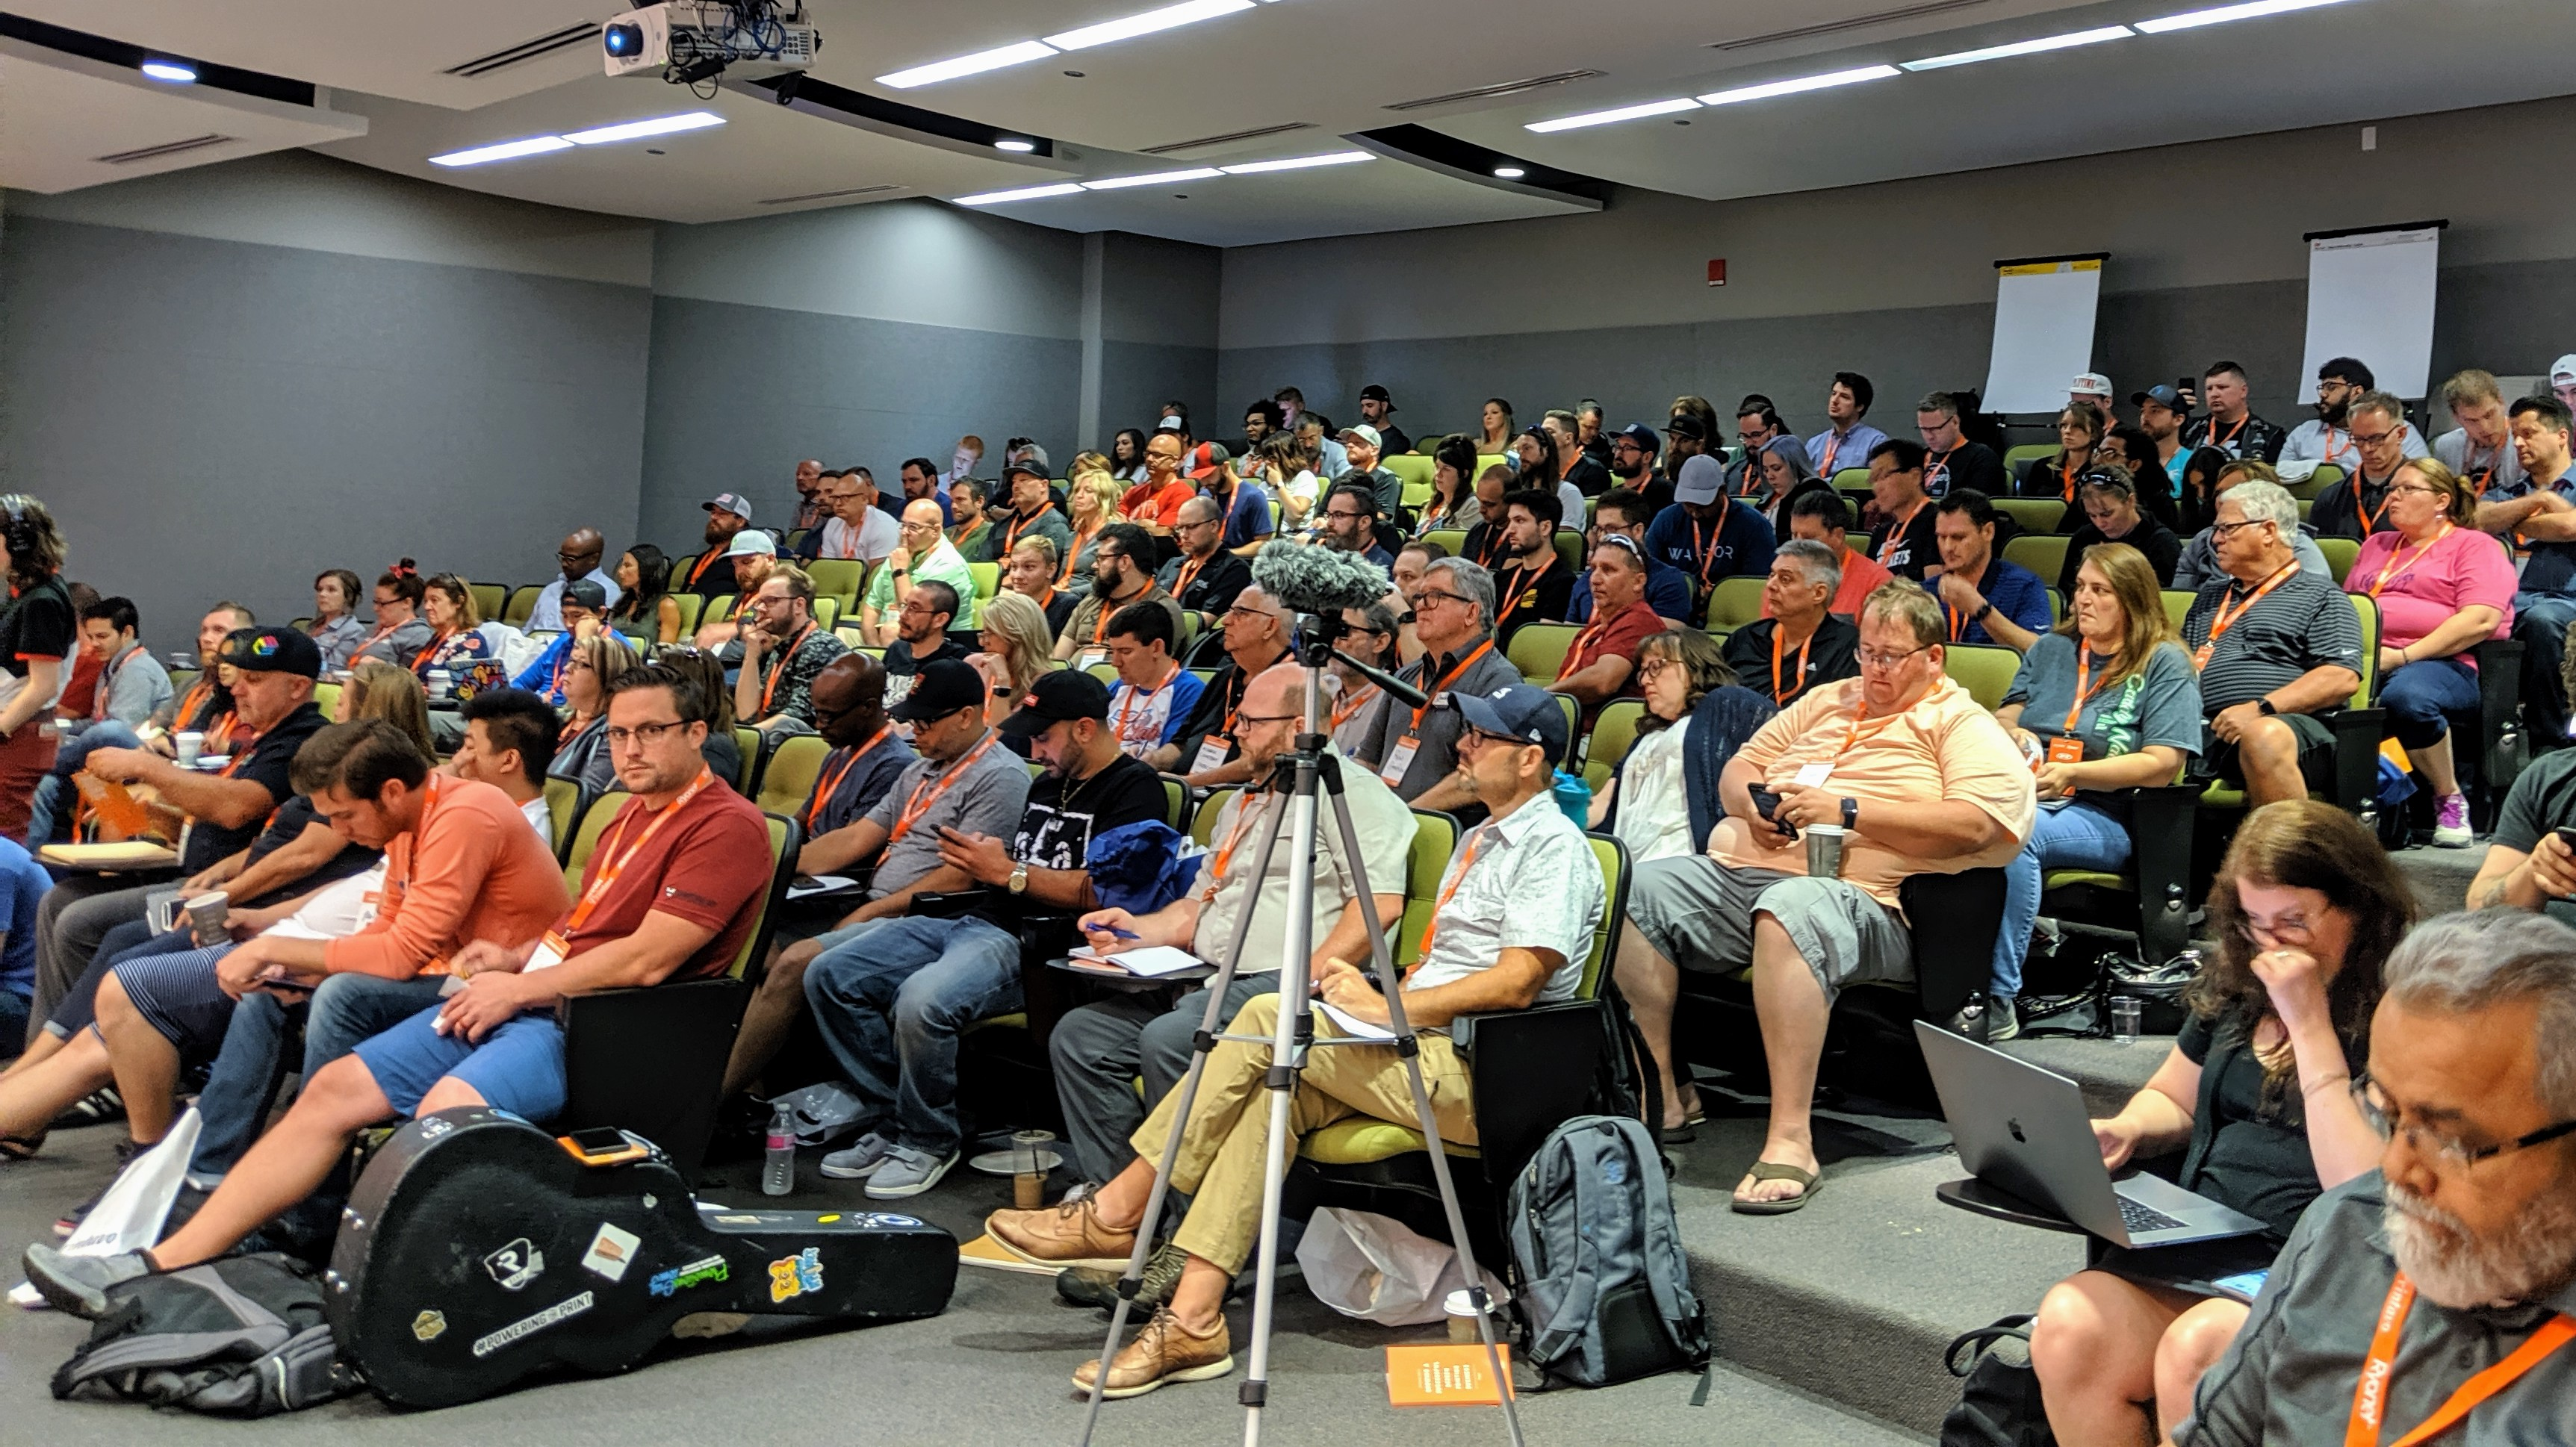 The audience at PrintHustlers Conf 2019